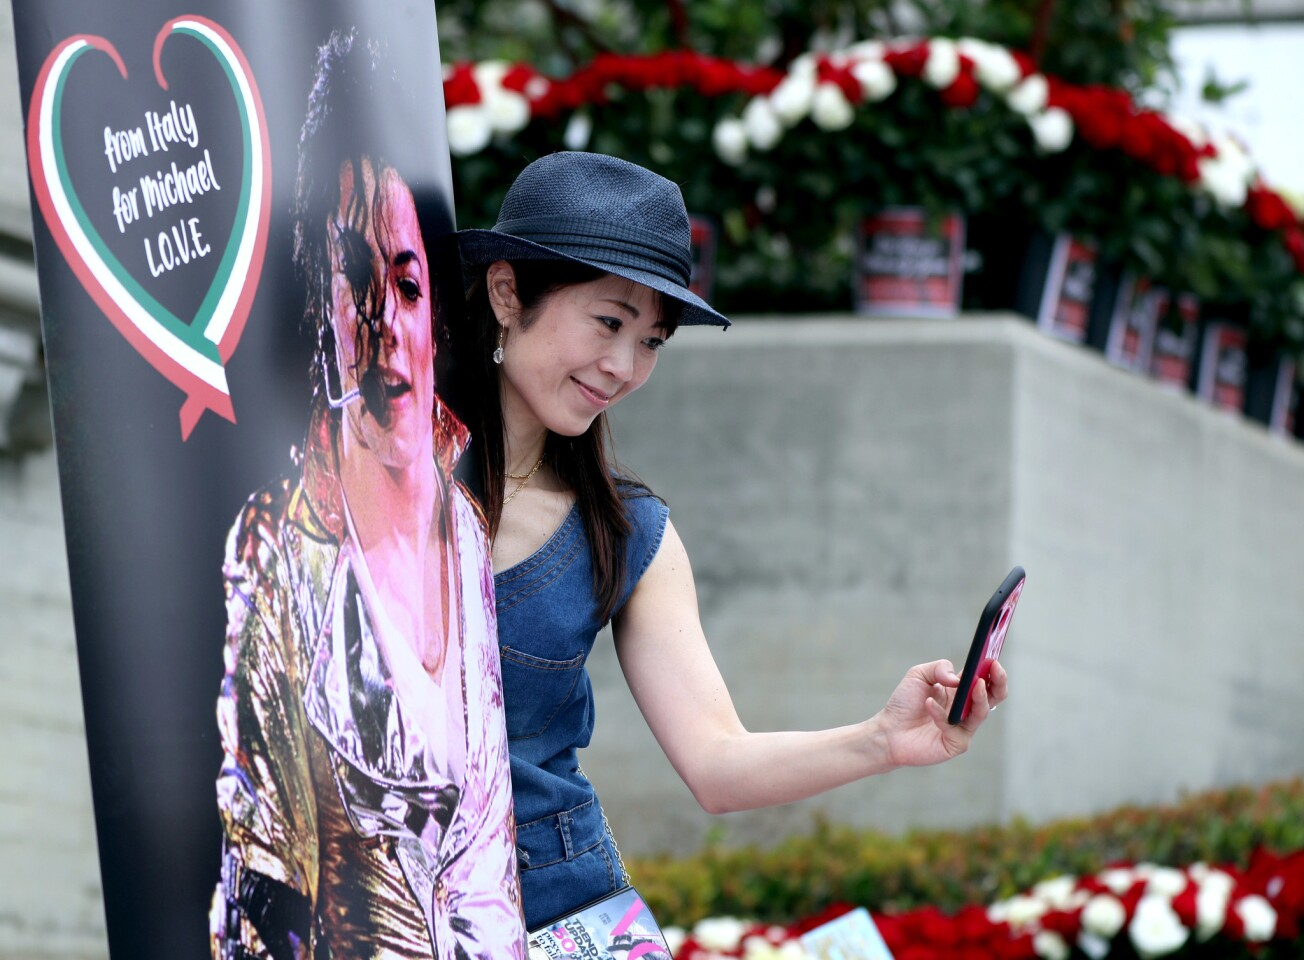 Photo Gallery: Fans gather at Michael Jackson's final resting place in Glendale on 10th anniversary of his death